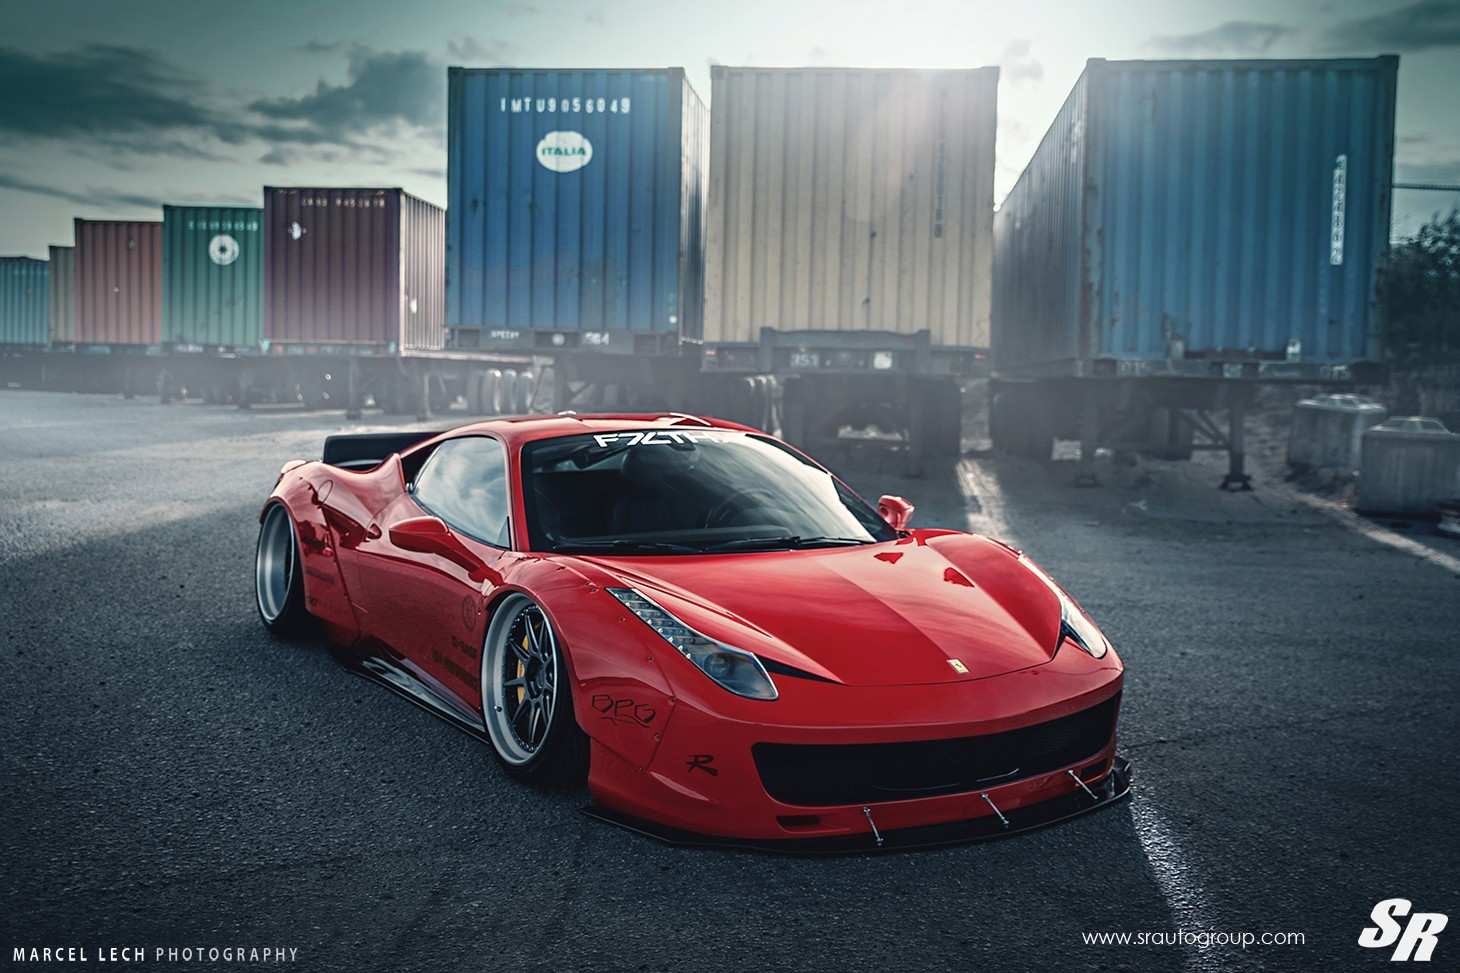 Sick Car Wallpapers Liberty Walk Ferrari 458 Italia On Pur Wheels Italian